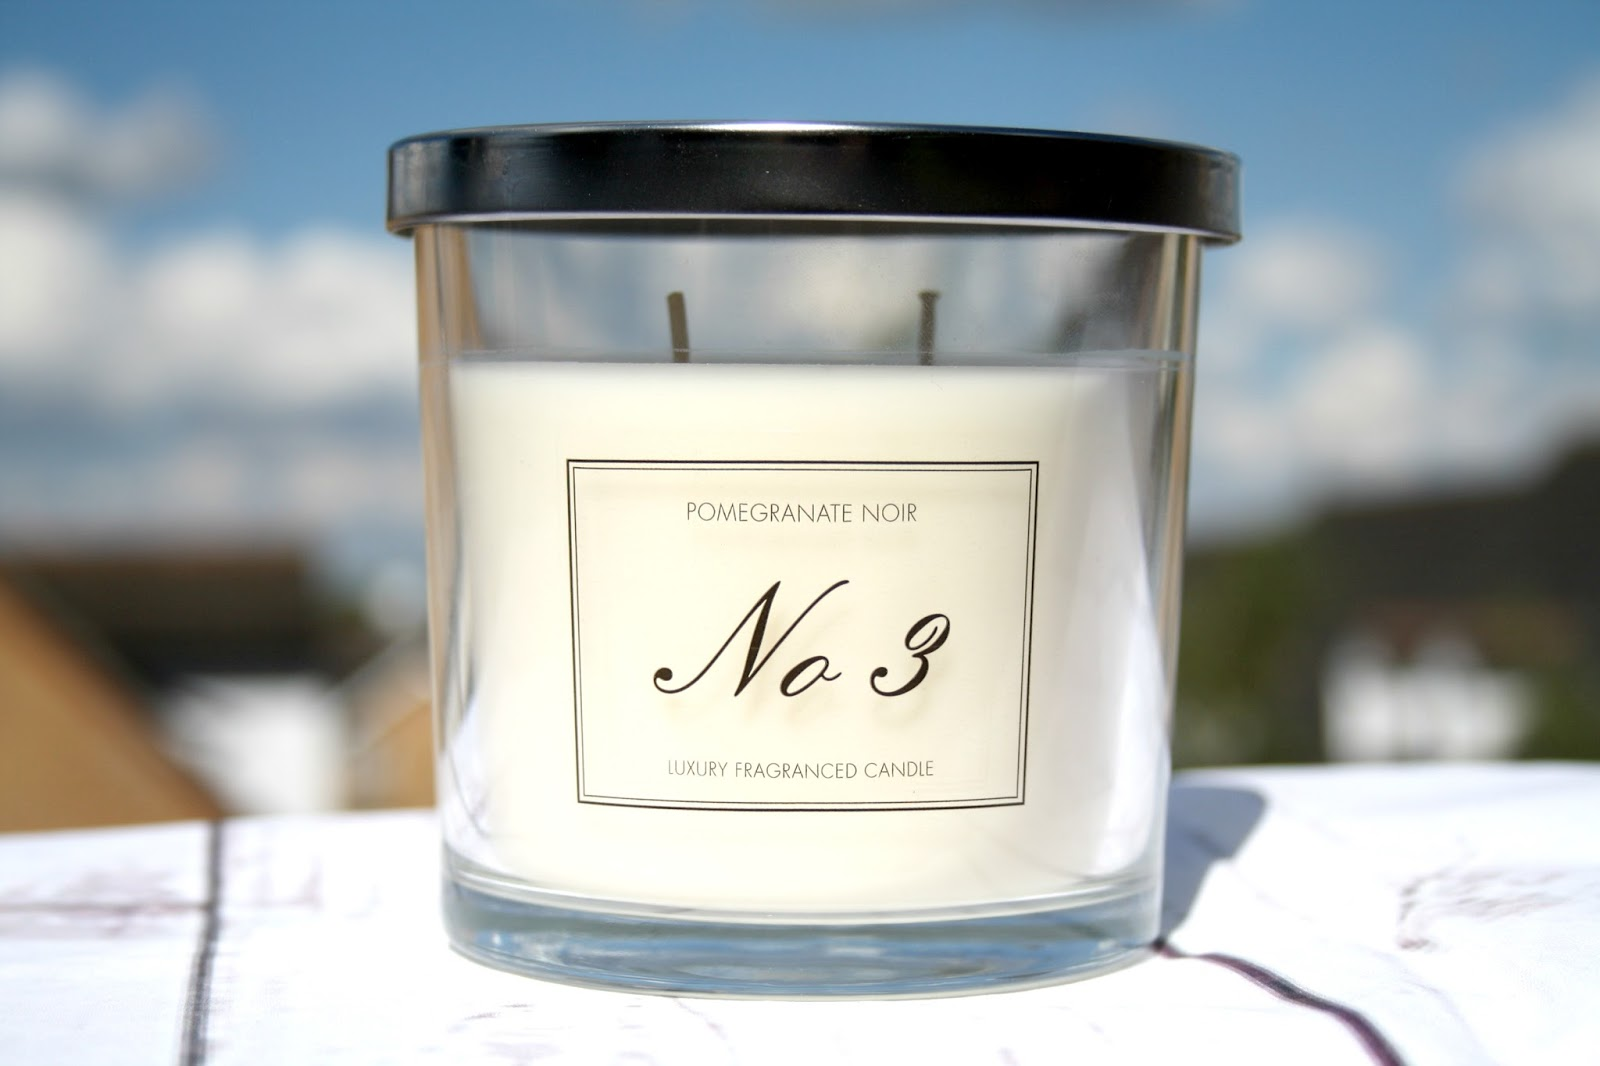 ... far more expensive which have less of a scent. For me, I think it is  the weakest of three candles. My favourite of all the candles is No.3 which  is ...